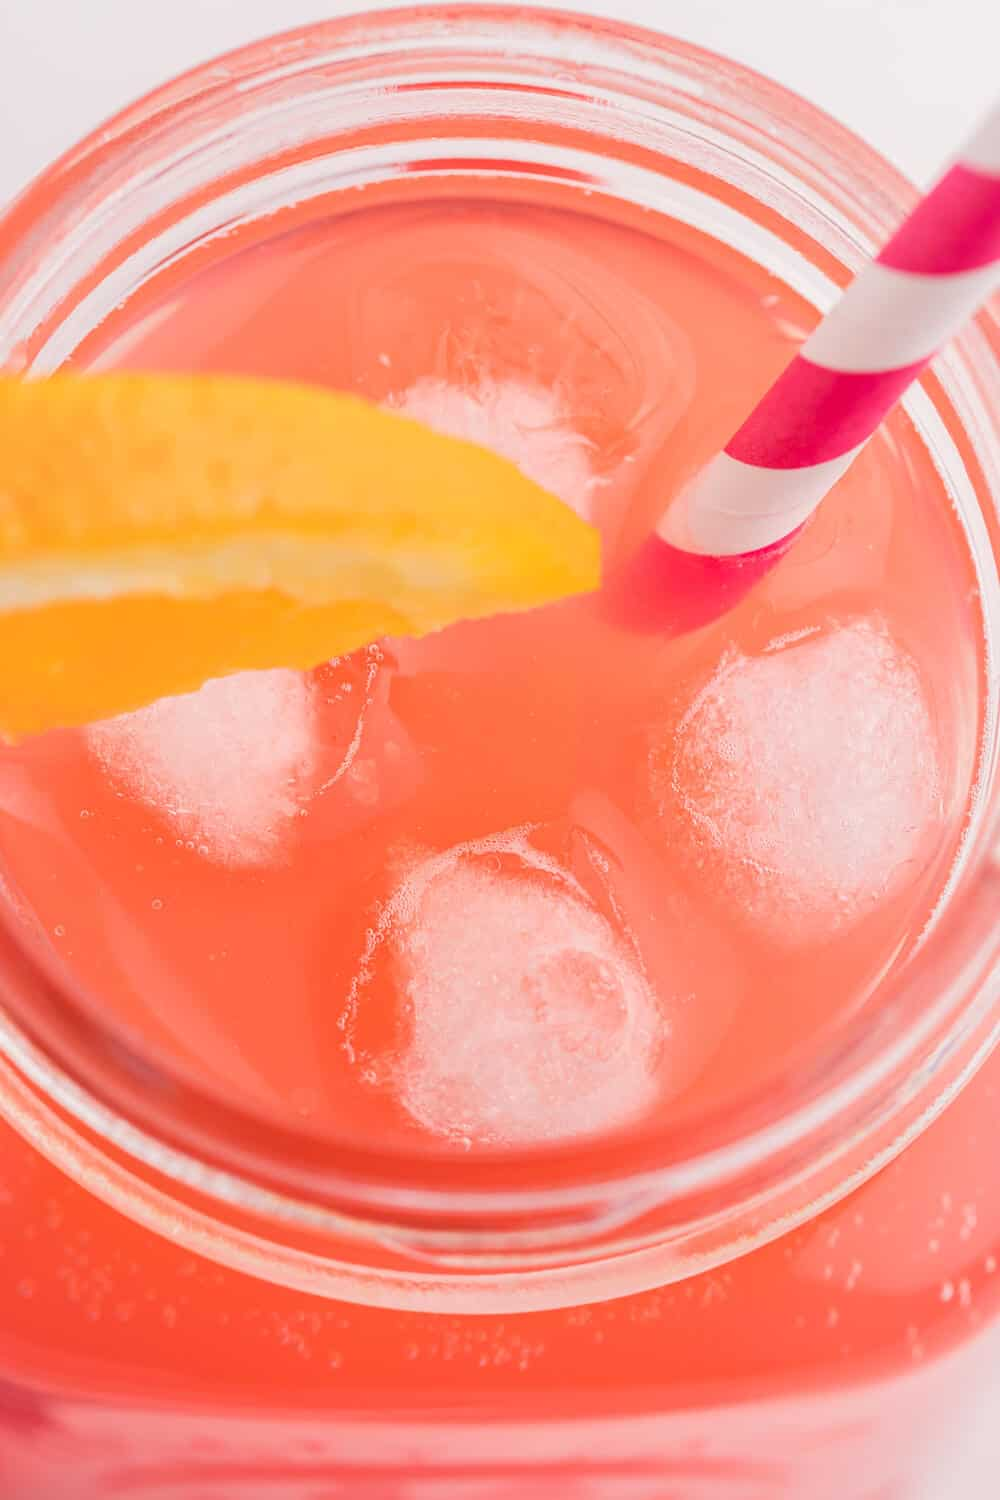 Shirley Temple - This classic mocktail beverage is sure to take you back to childhood. A perfect treat for kids and kids at heart, this sipper is full of fresh citrus juice, and is, of course, topped with a maraschino cherry!